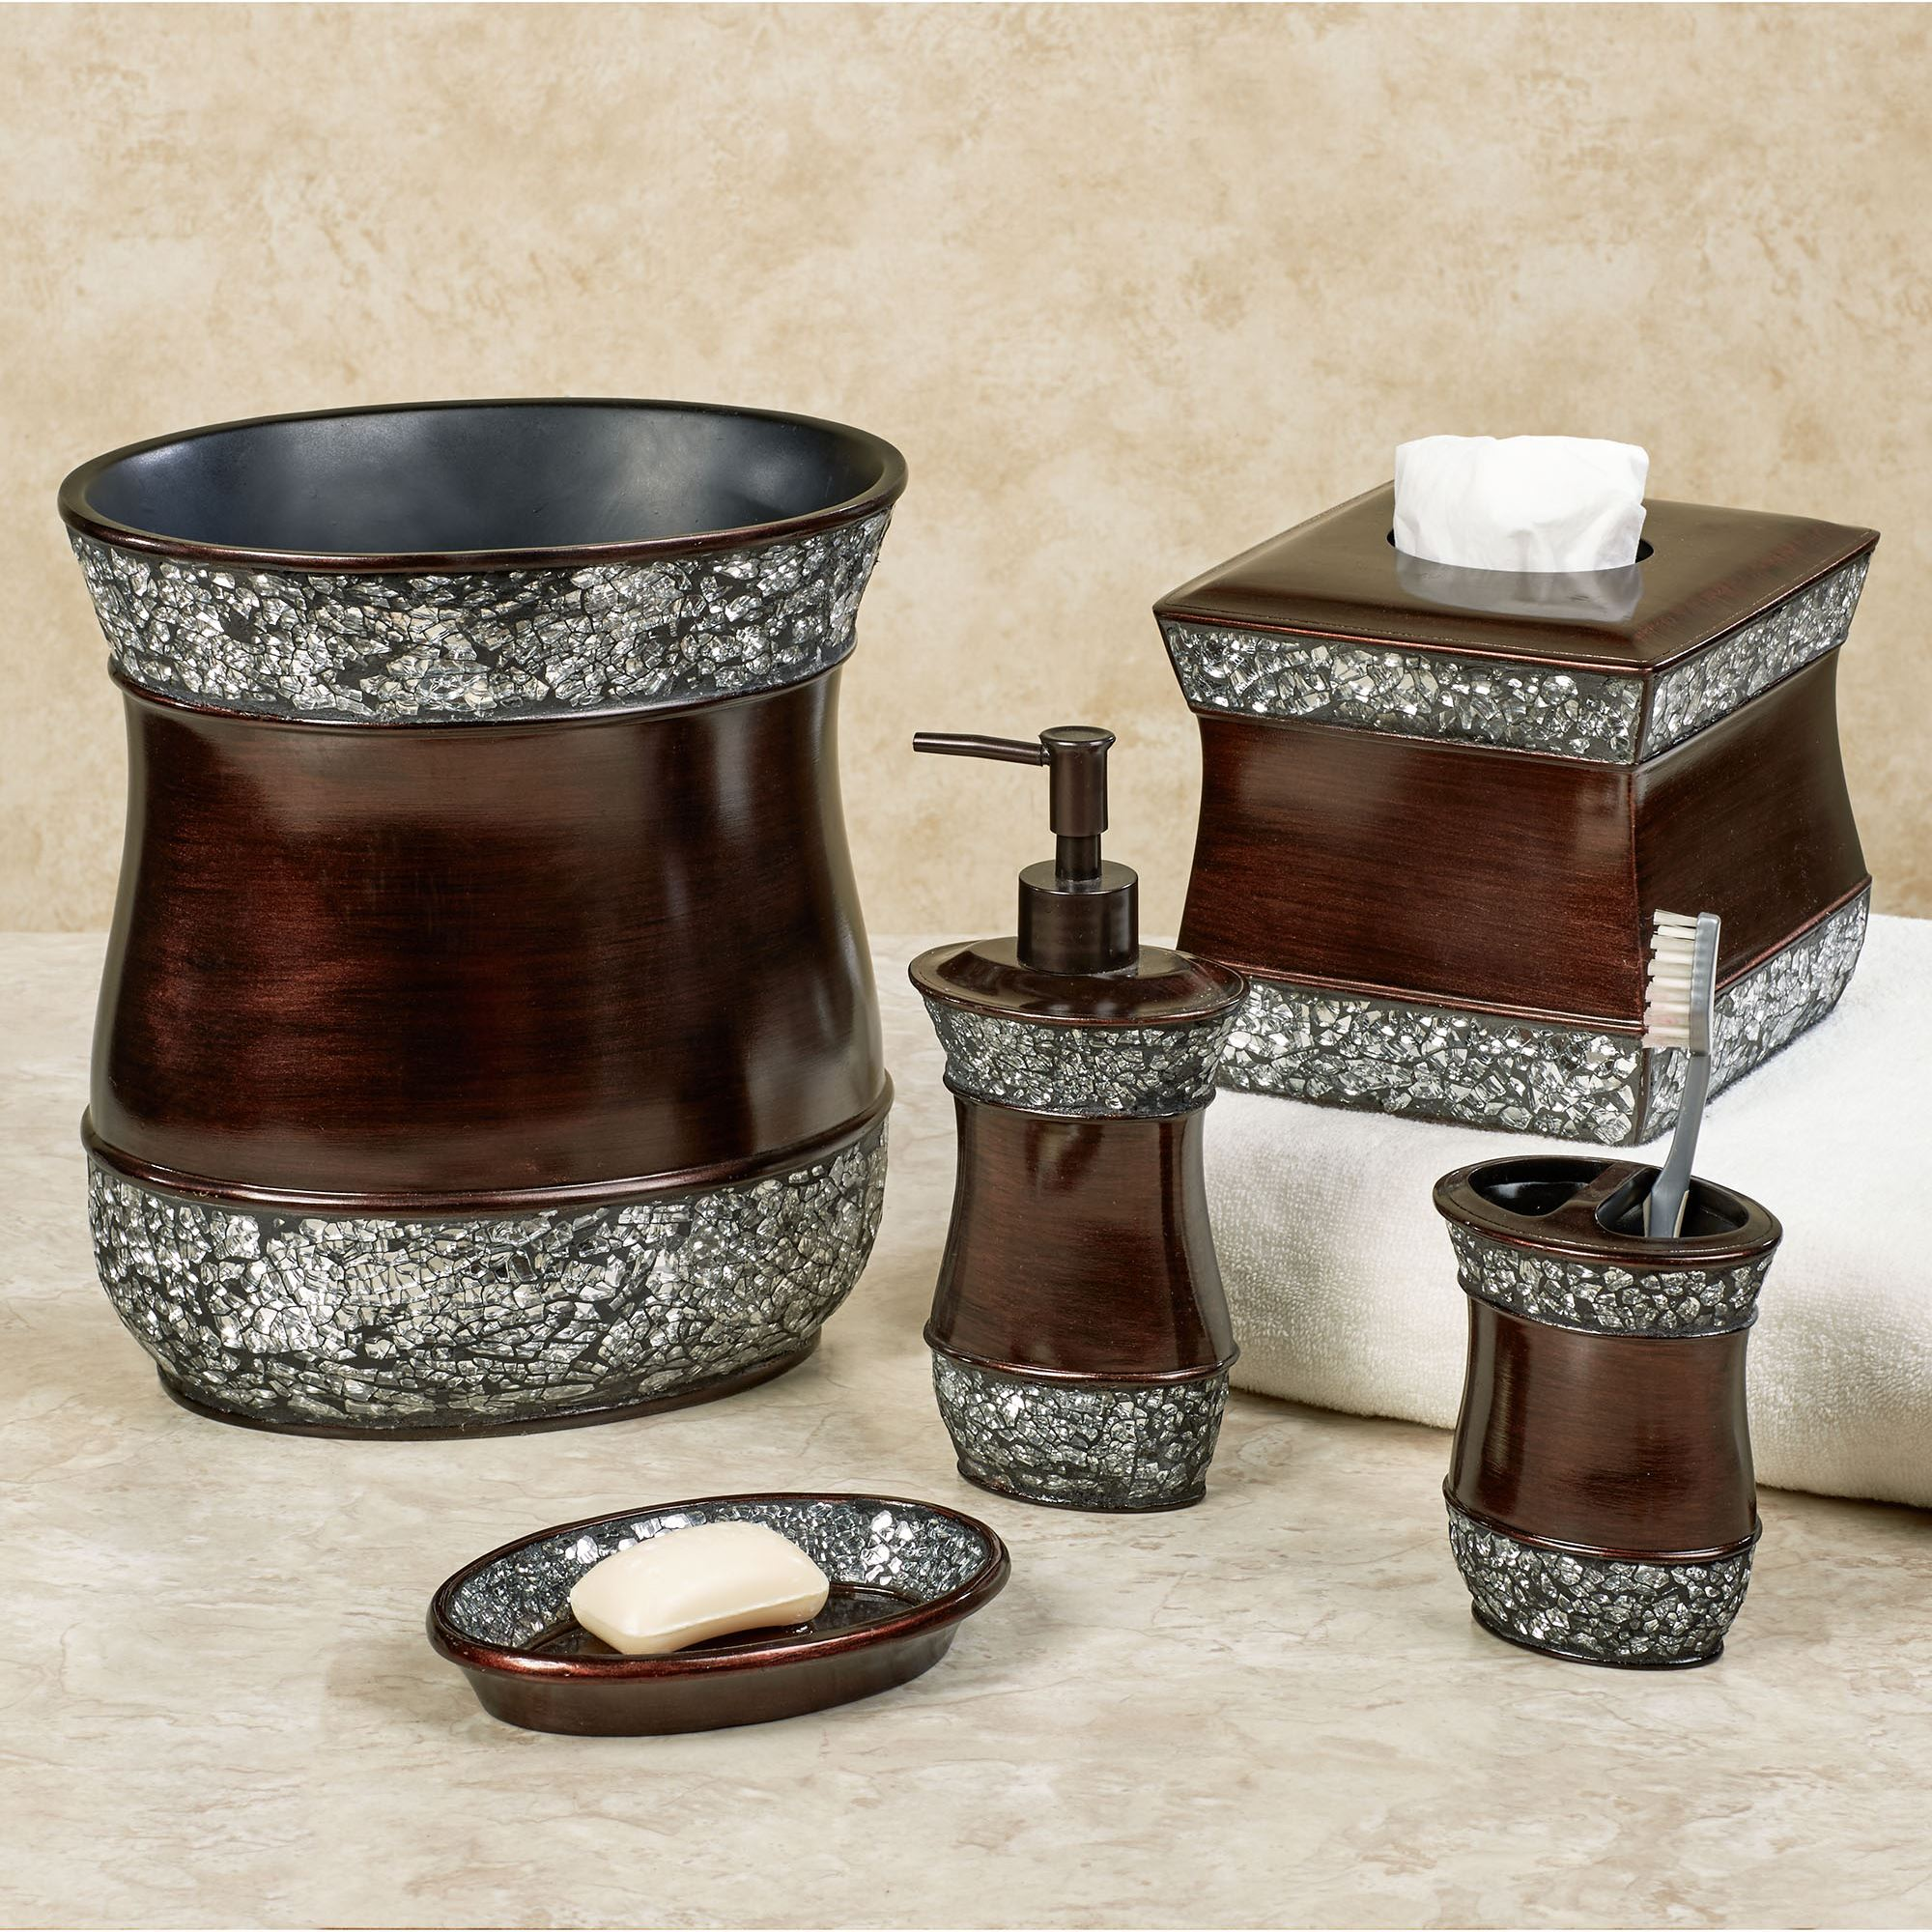 Elite Handpainted Bath Accessories - Brushed bronze bathroom hardware